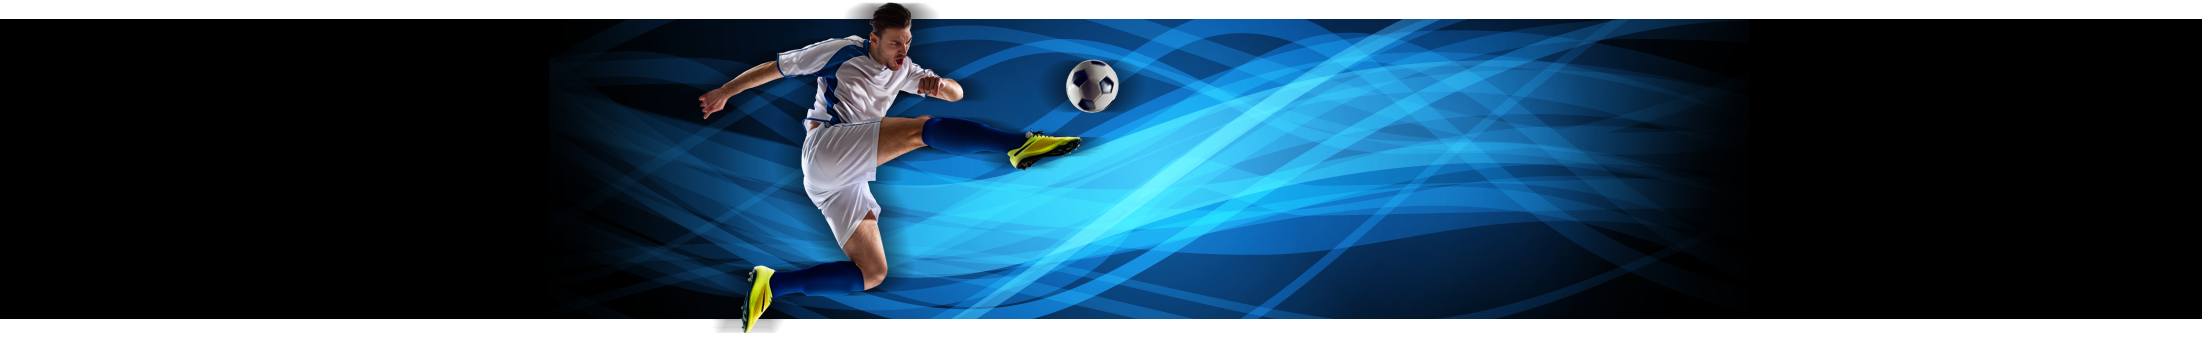 Booking Online page graphic showing a man kicking a football for Anderson Peak Performance, New York based chiropractic clinic